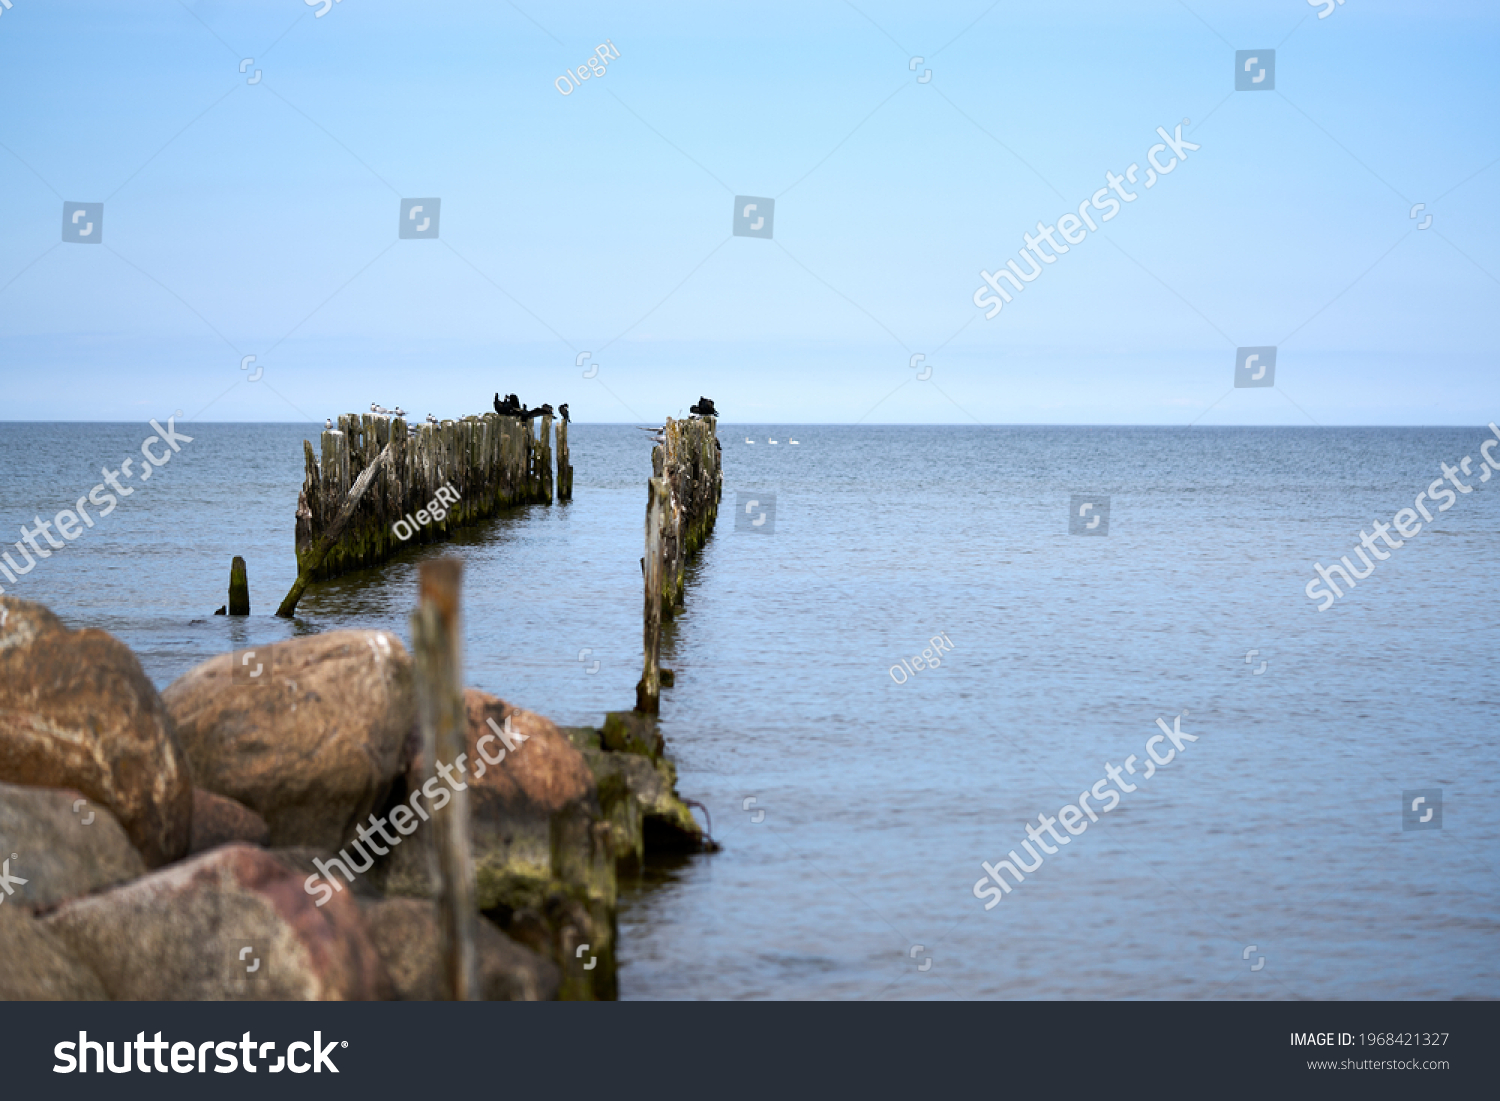 Battered wooden piles of the old pier in the Baltic Sea, leaving the horizon #1968421327